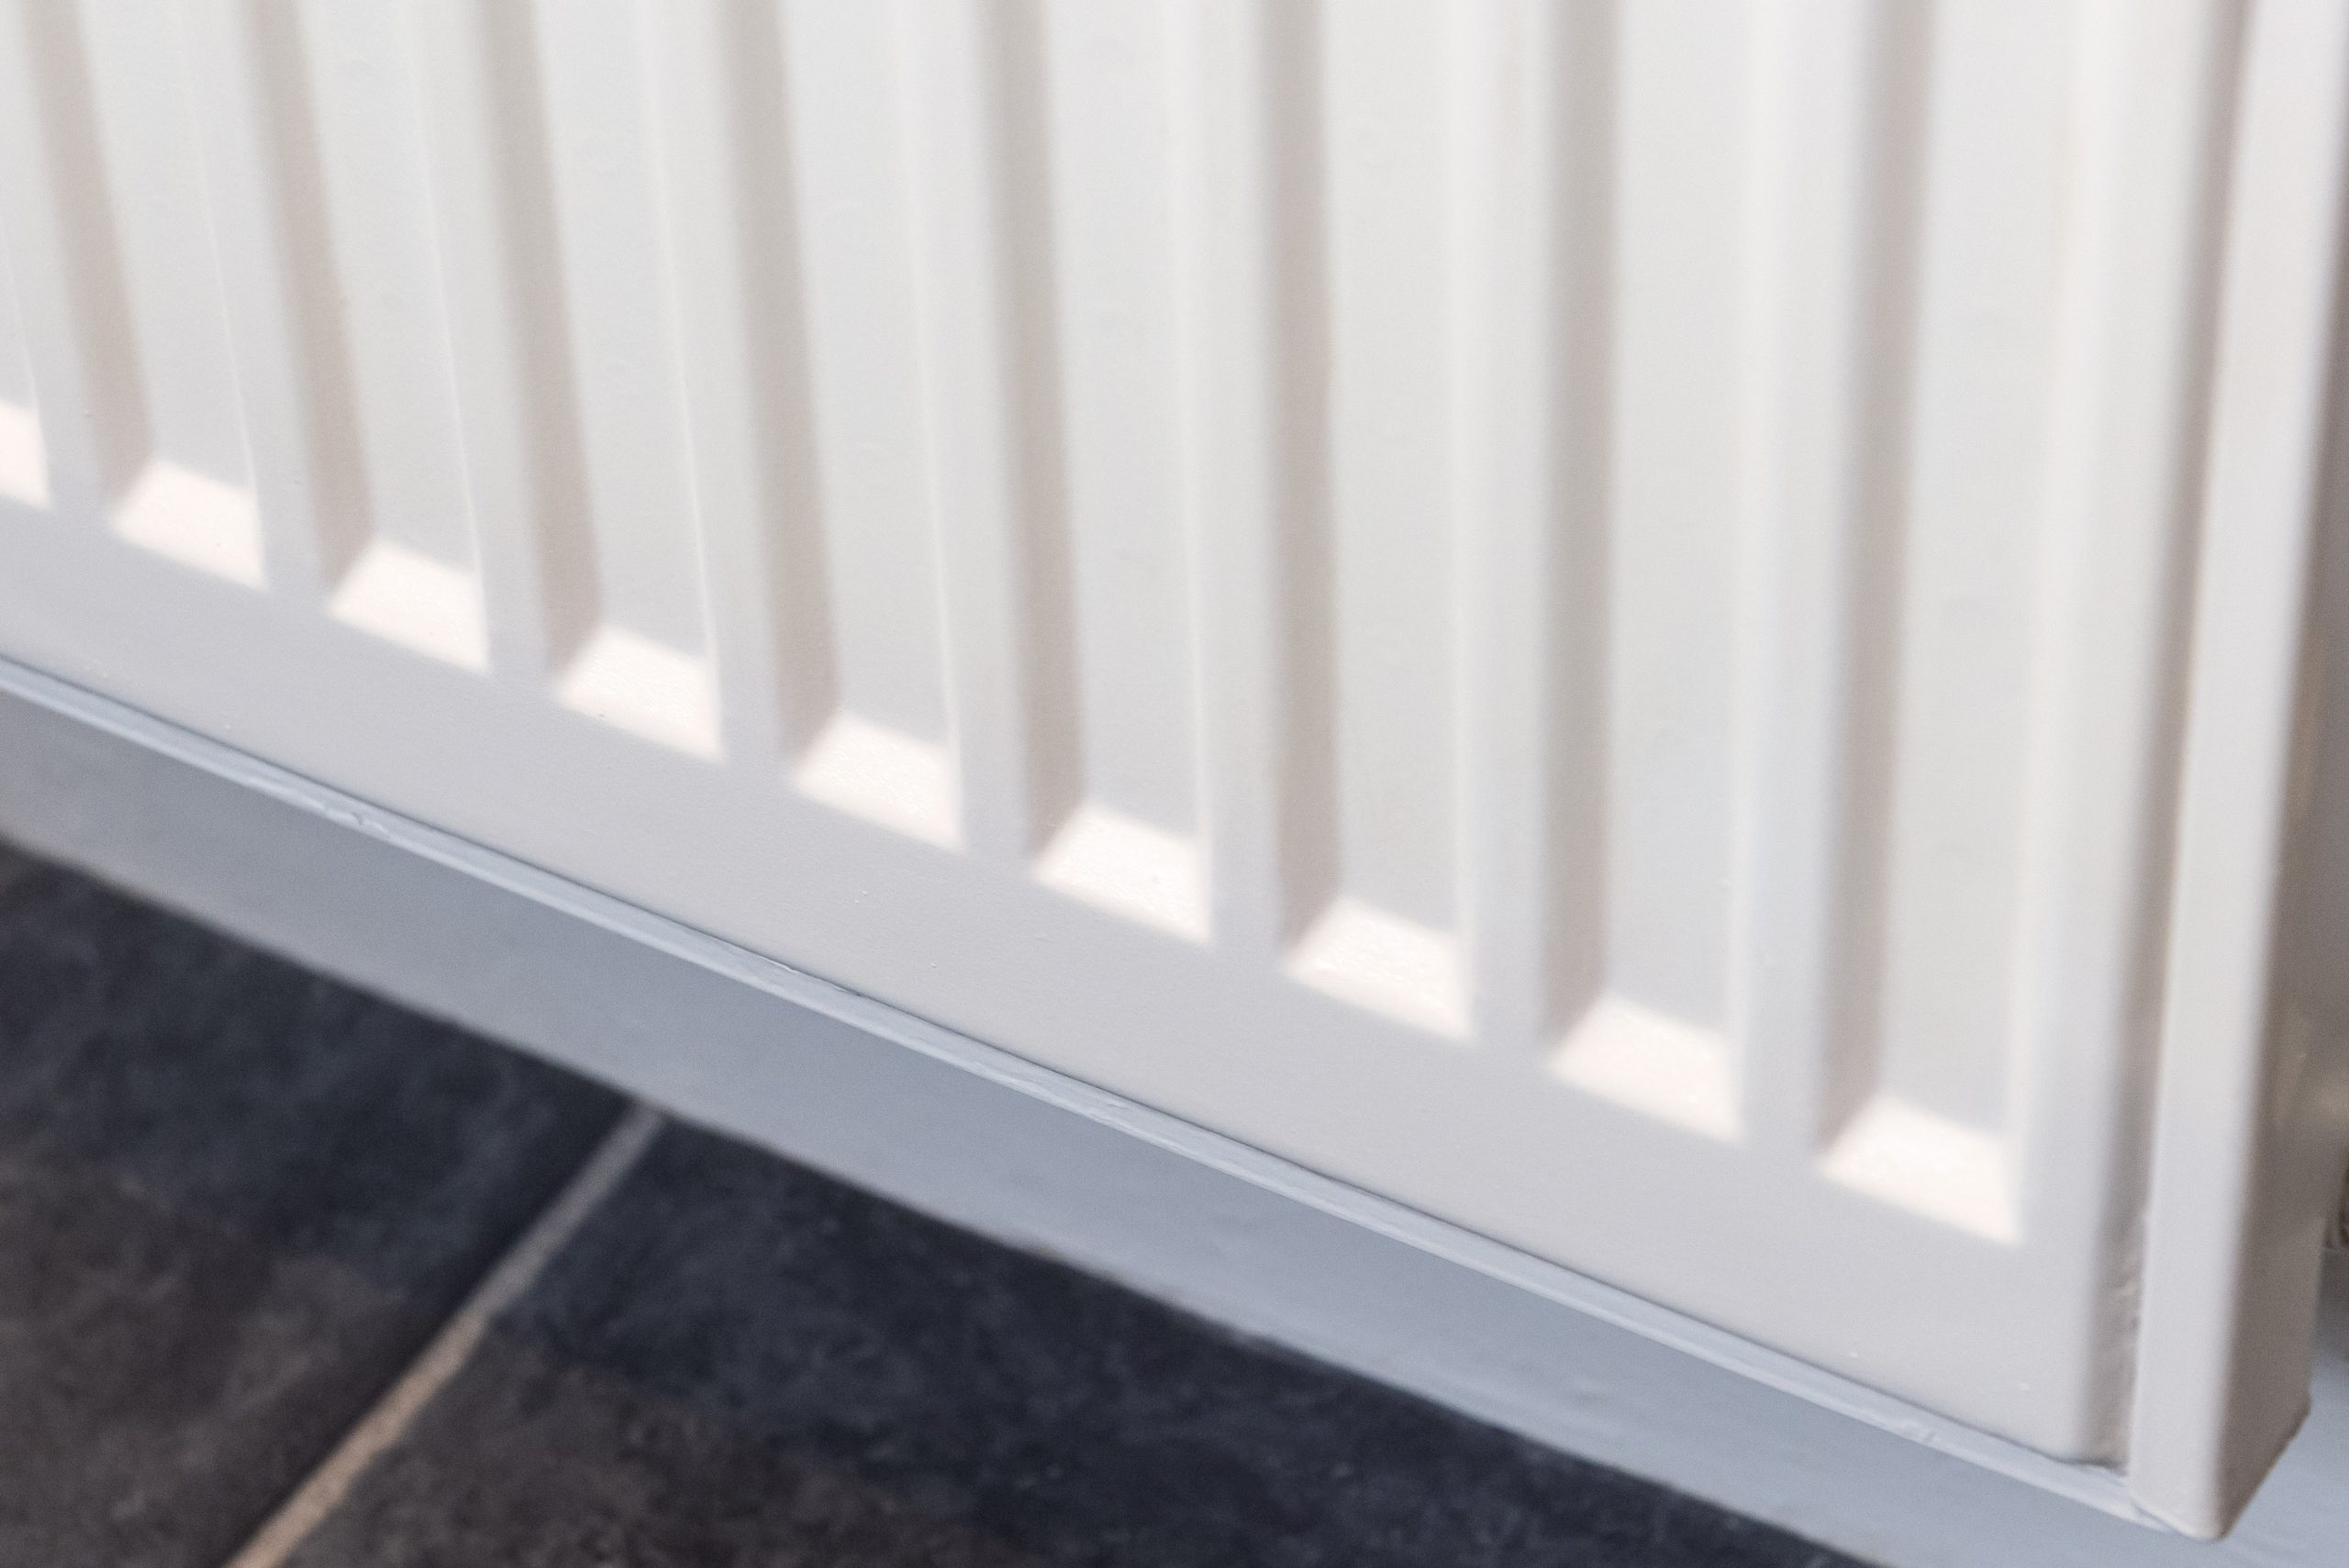 Radiator repairs from Refinishing Touch bring radiators back to their original condition